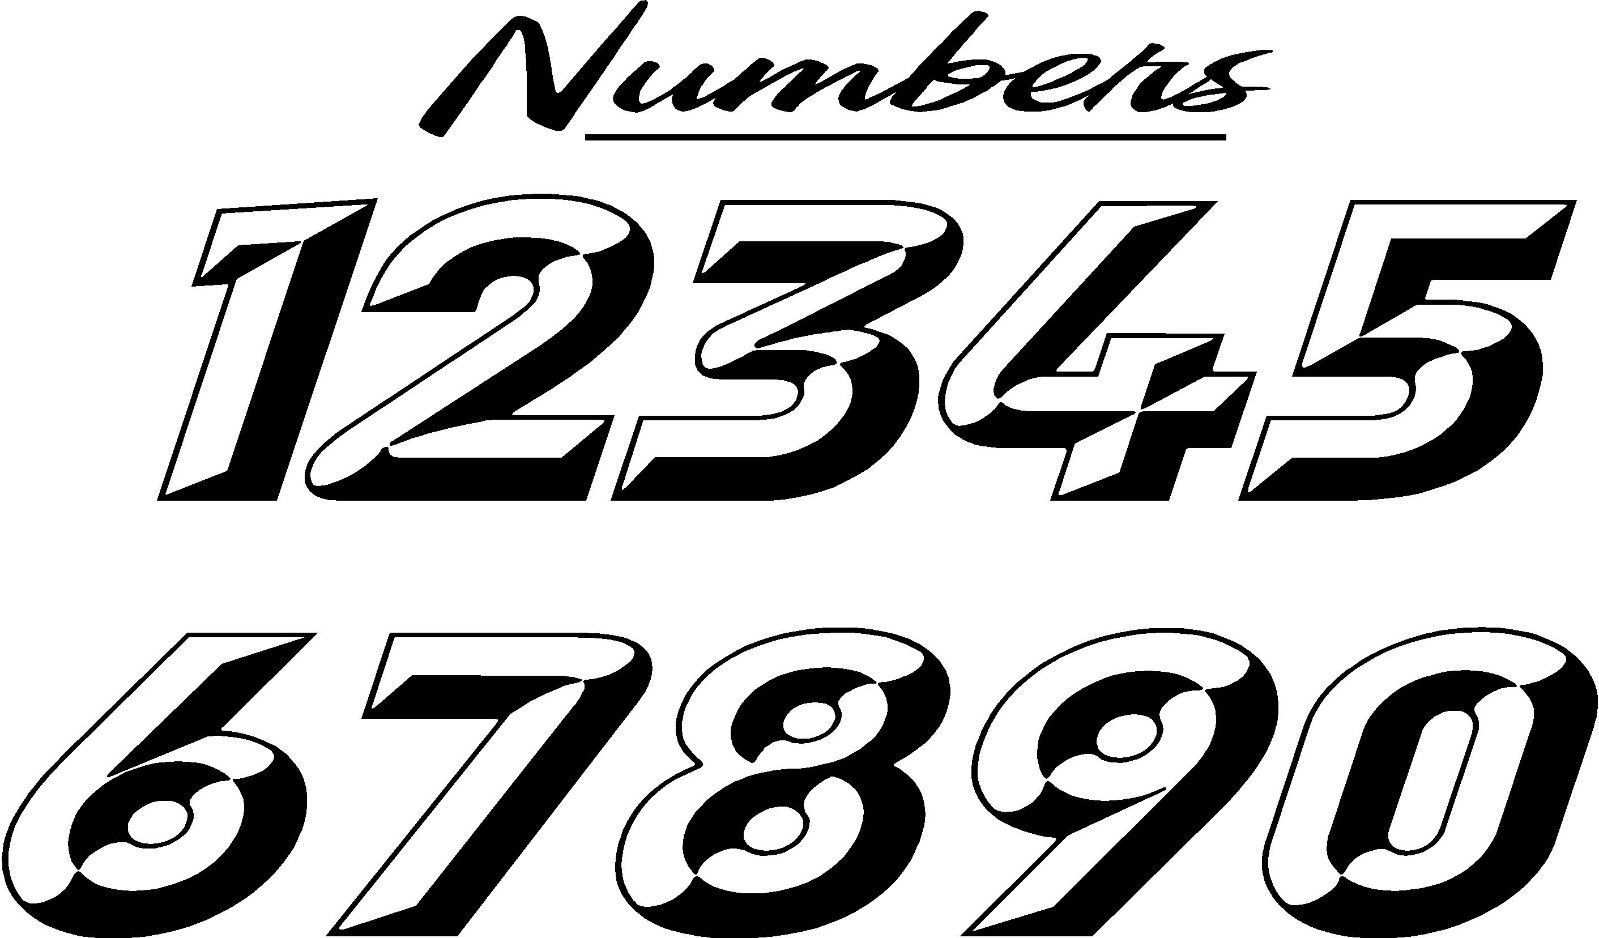 custom race car numbers decals graphics - full number kit - graphic chisel